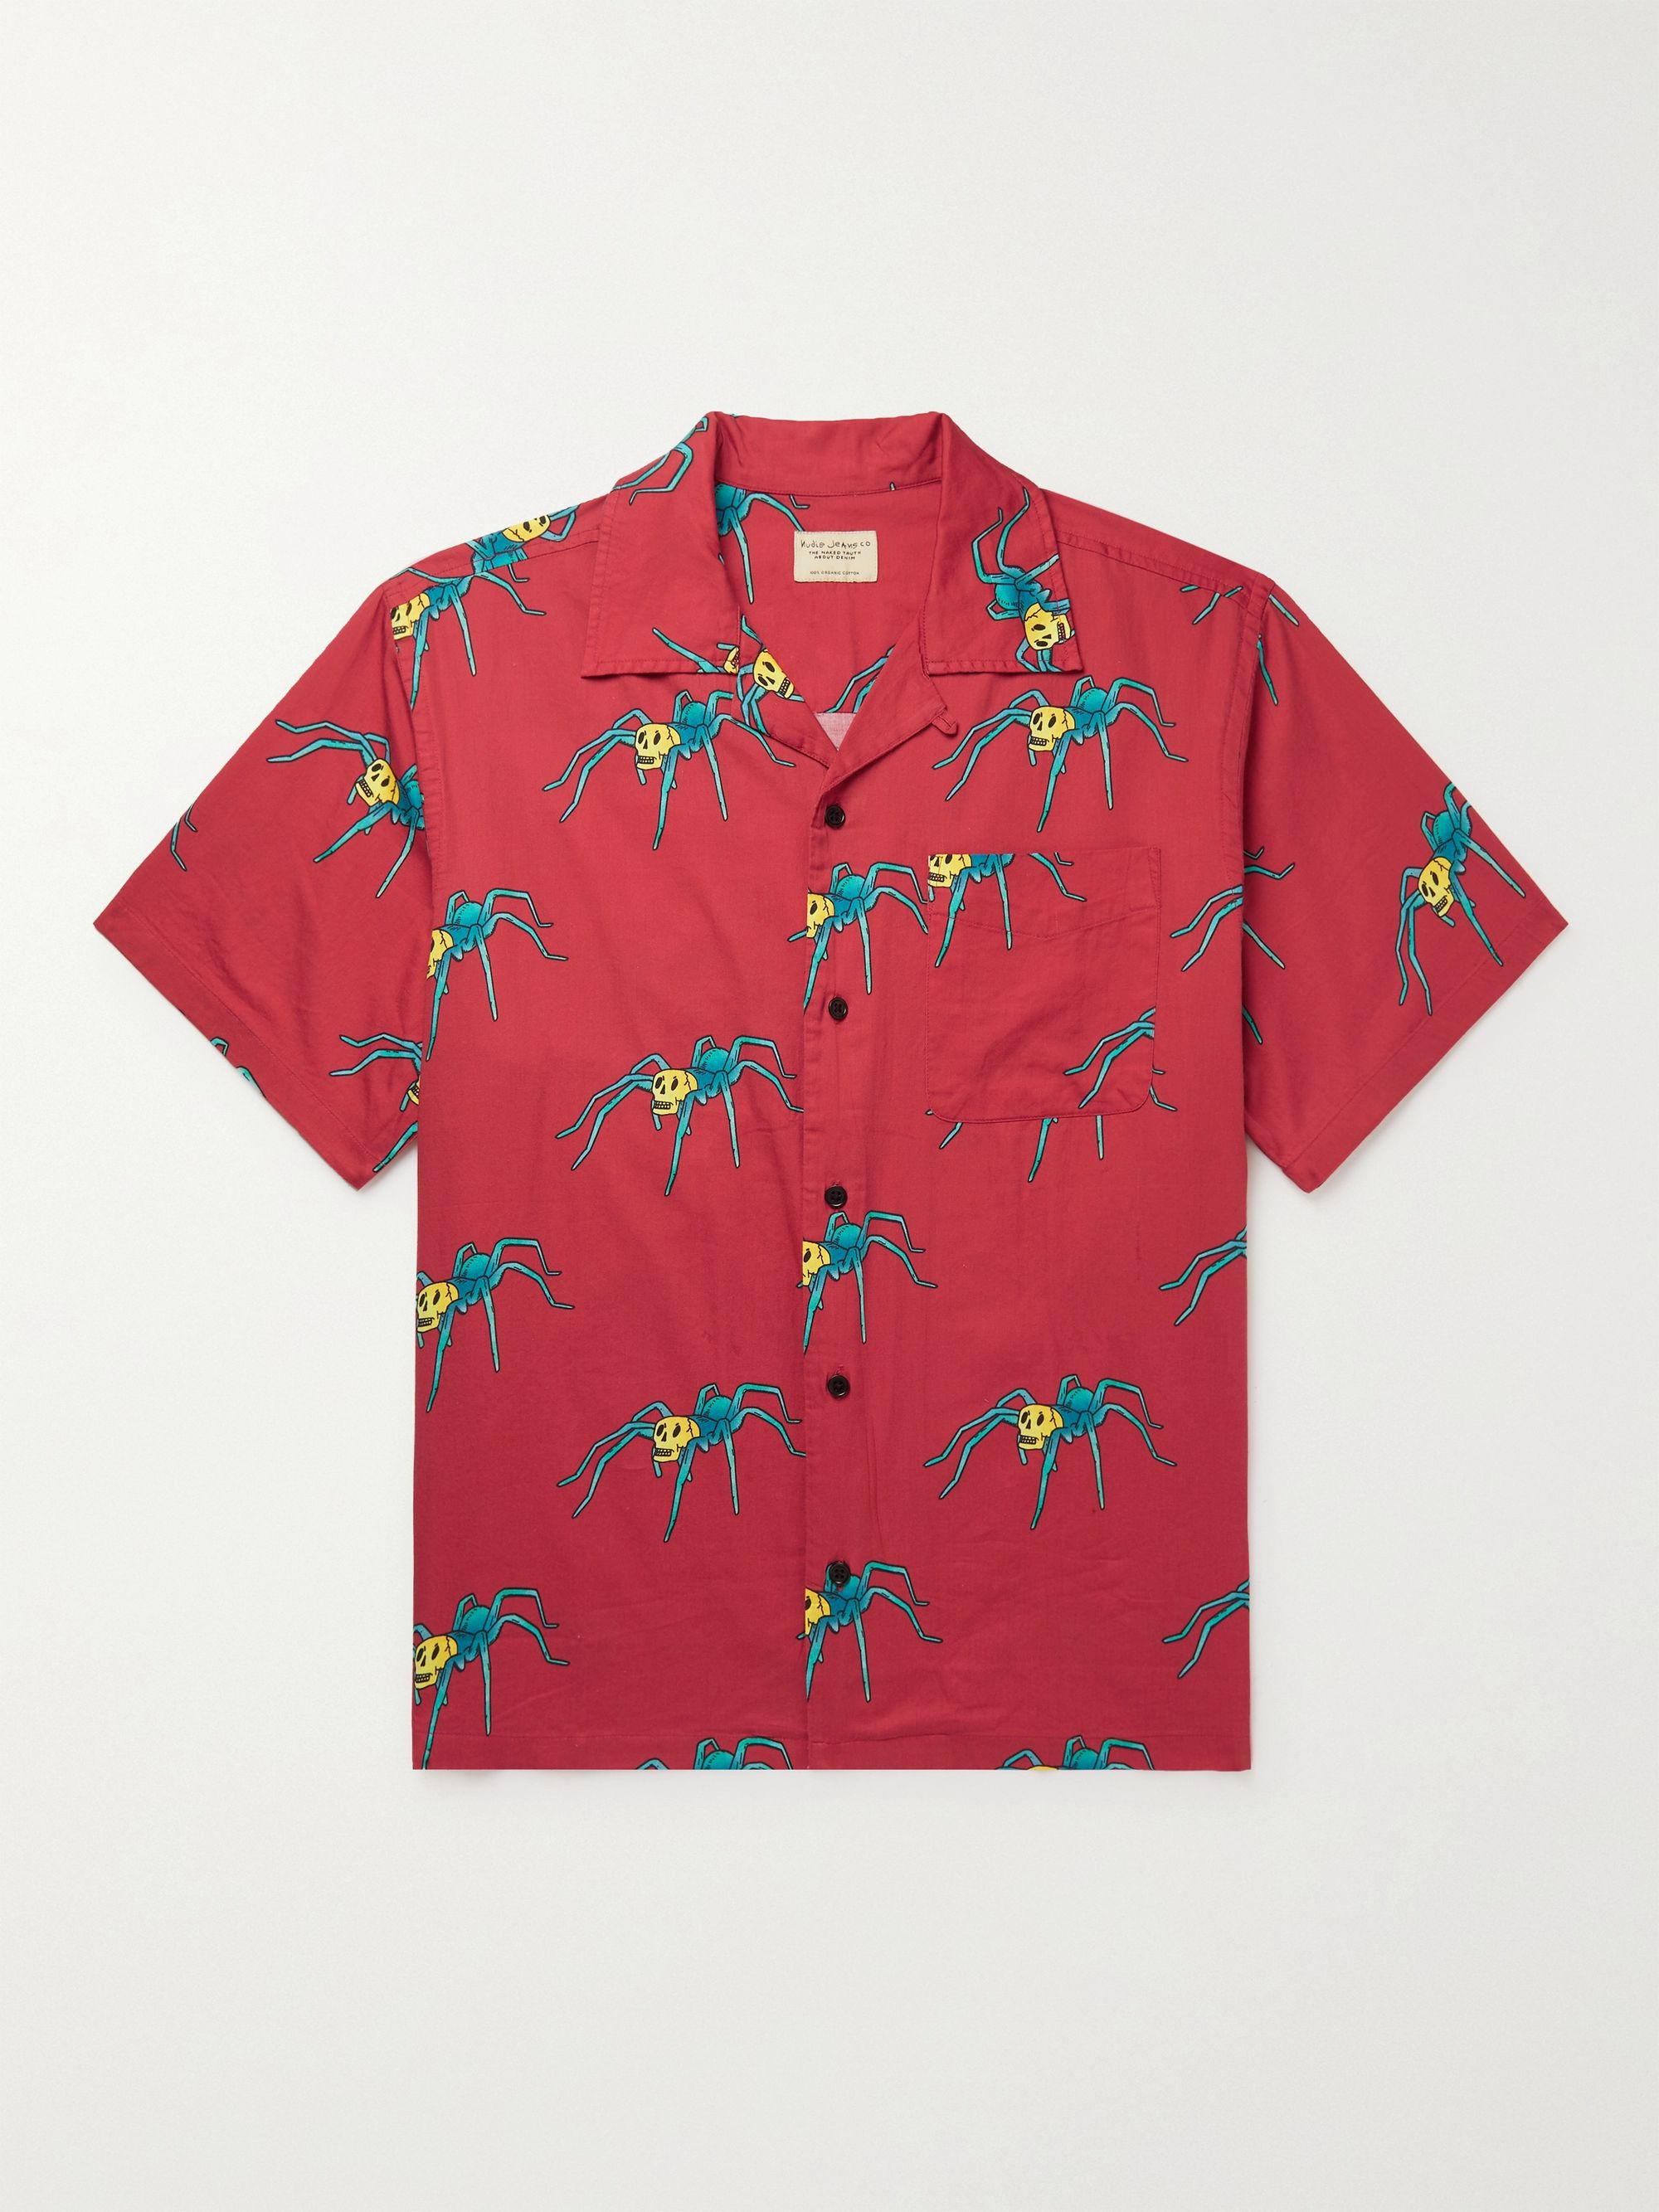 NUDIE JEANS Aron Spiders Convertible-Collar Printed Organic Cotton Shirt,Red